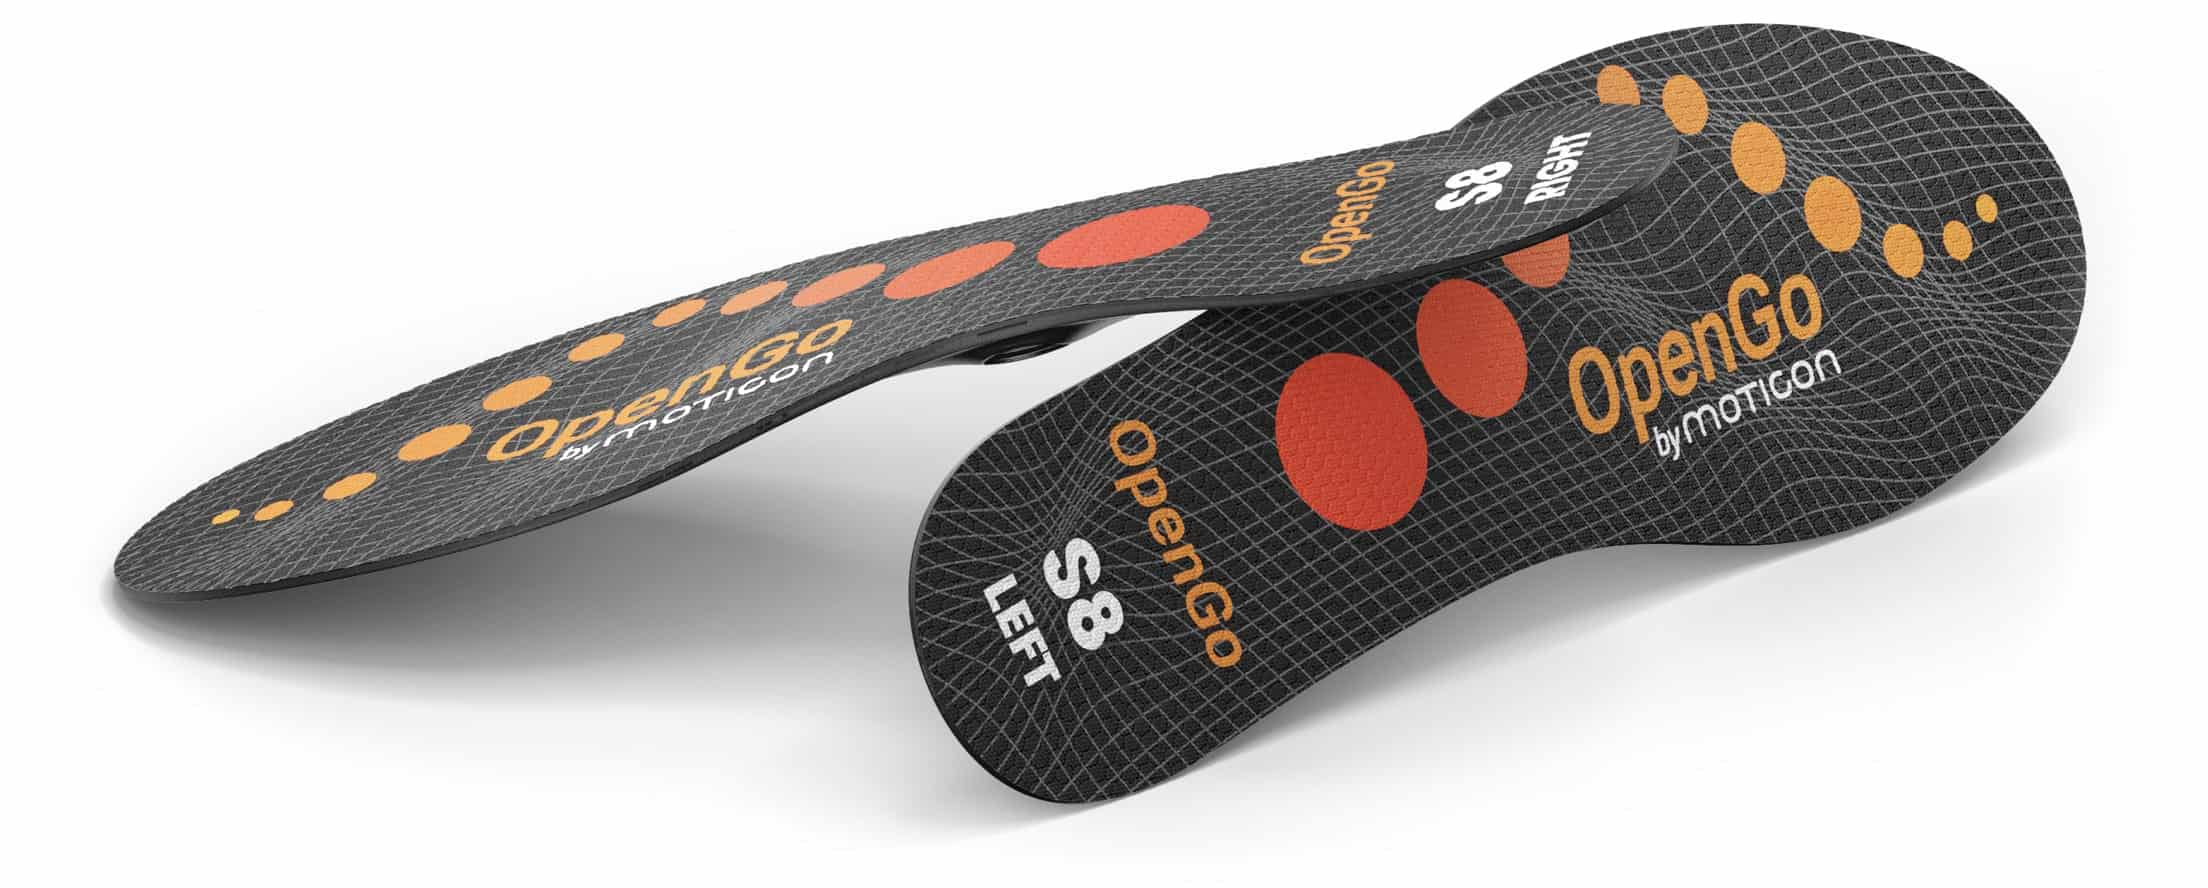 moticon-opengo-sensor-insoles-stacked-sizes